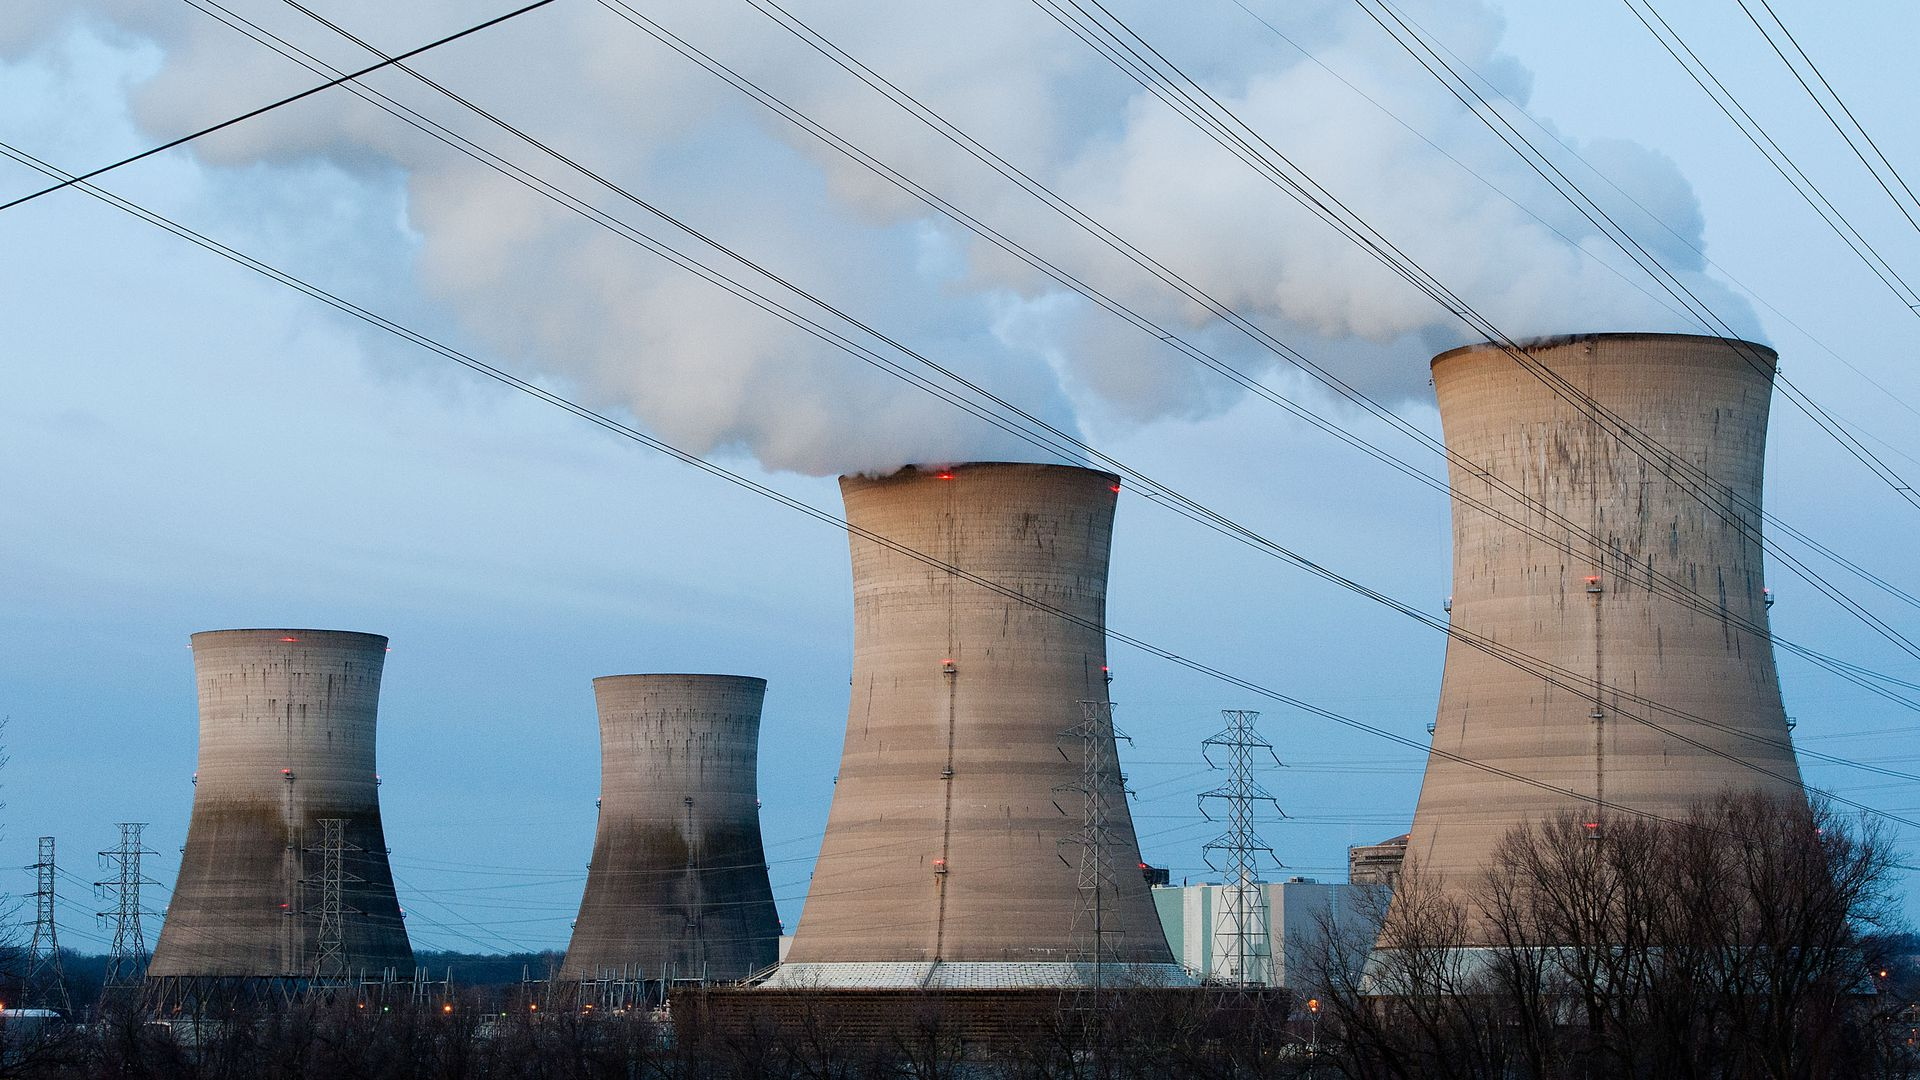 In this image, nuclear reactors billow vapor into the air.